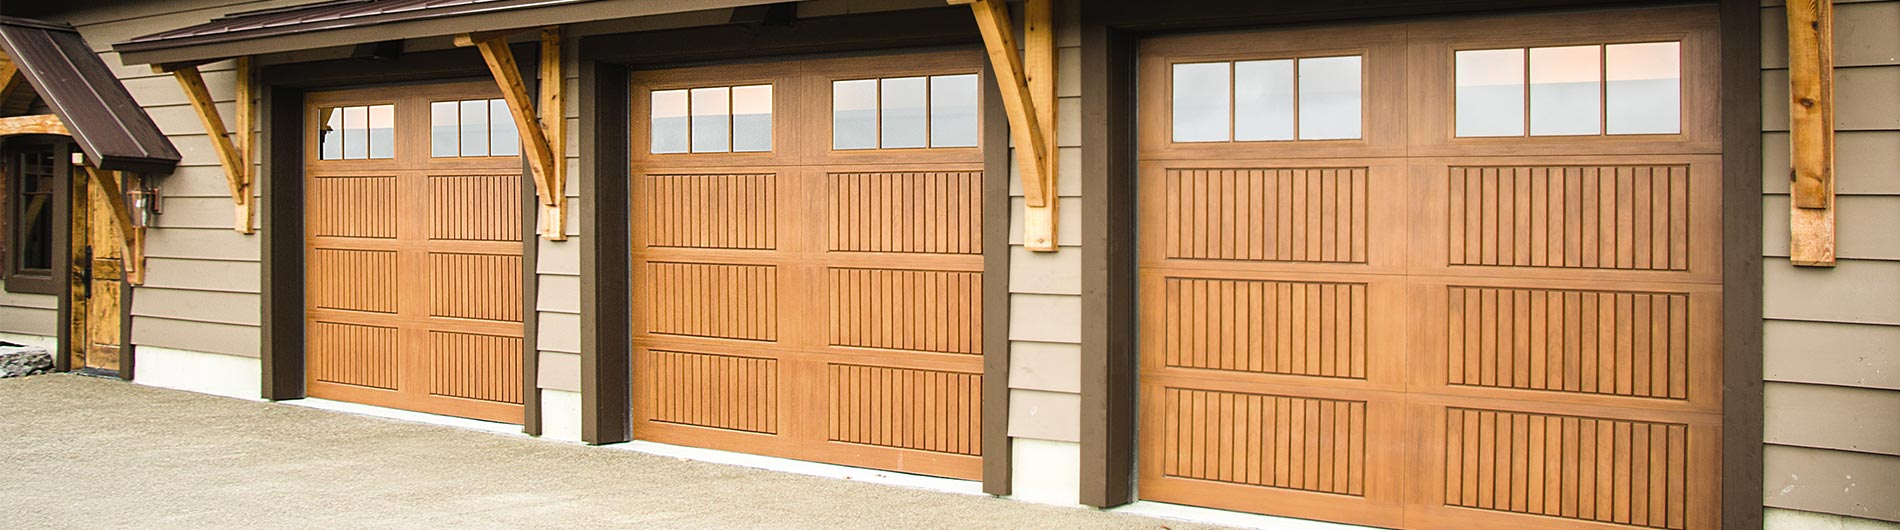 garage doors sonoma fiberglass walnut door